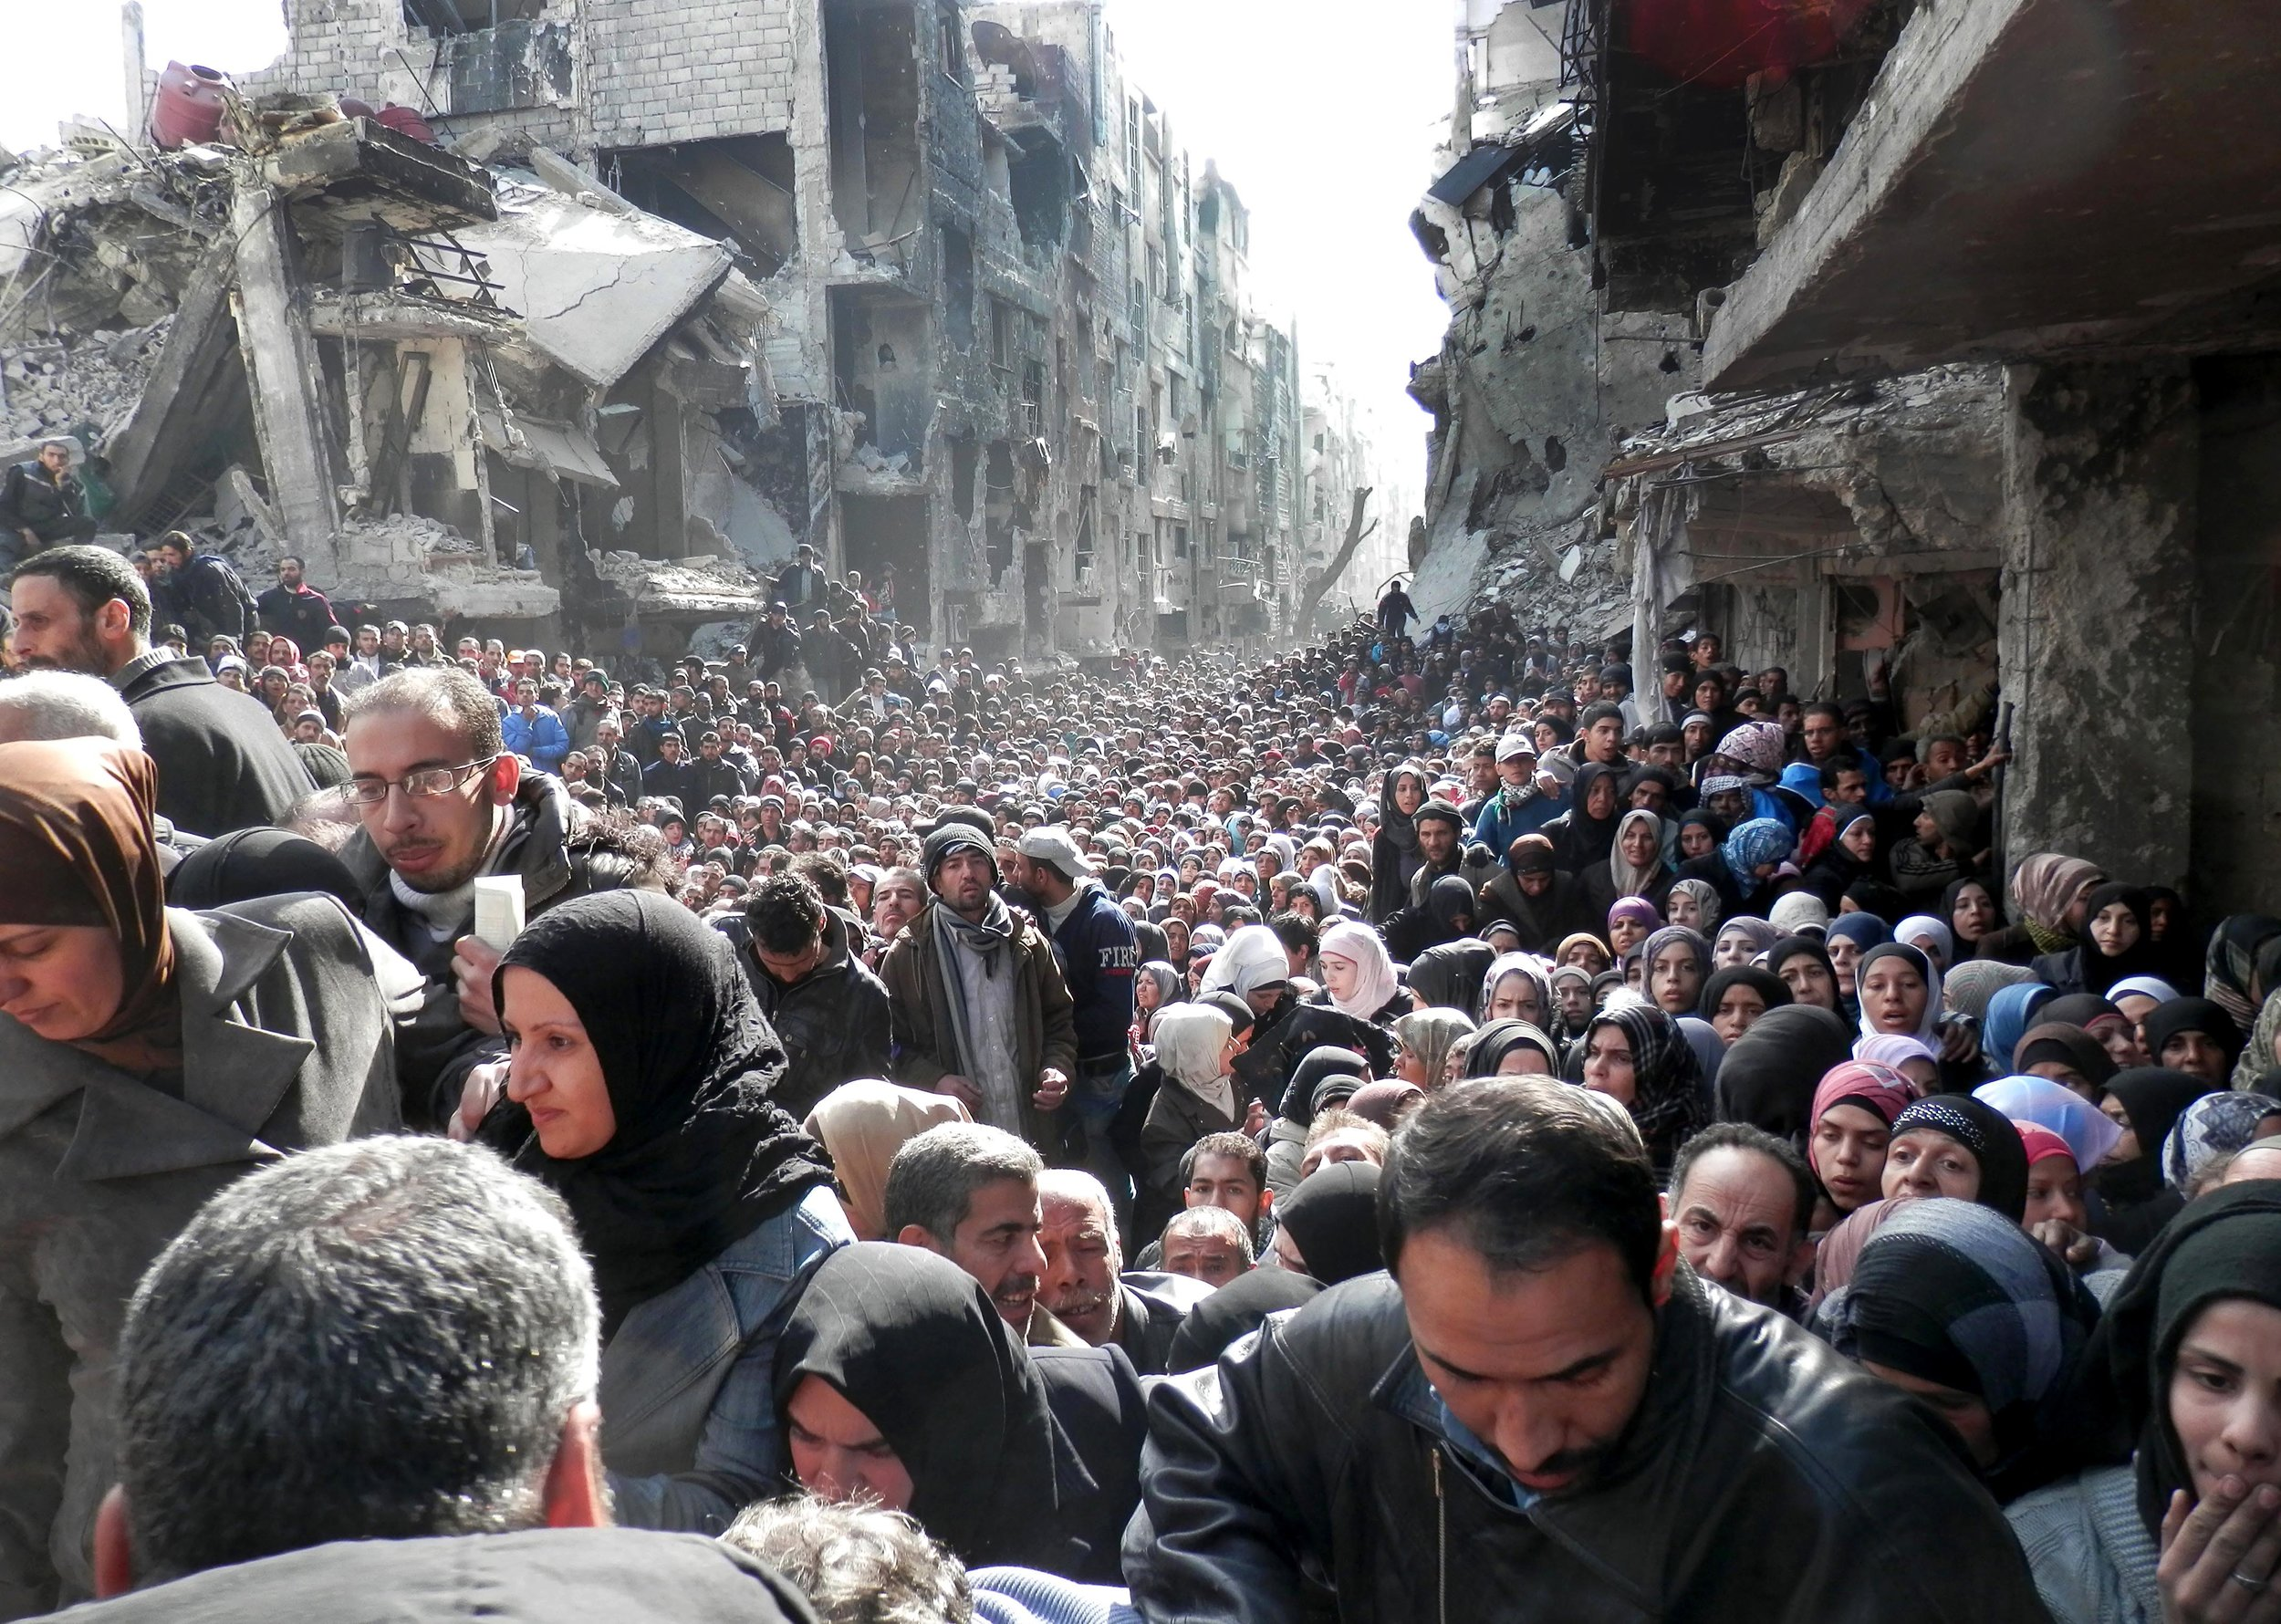 Residents of the besieged in Yarmouk line up to receive food supplies in Damascus, Syria, Jan. 31, 2014.